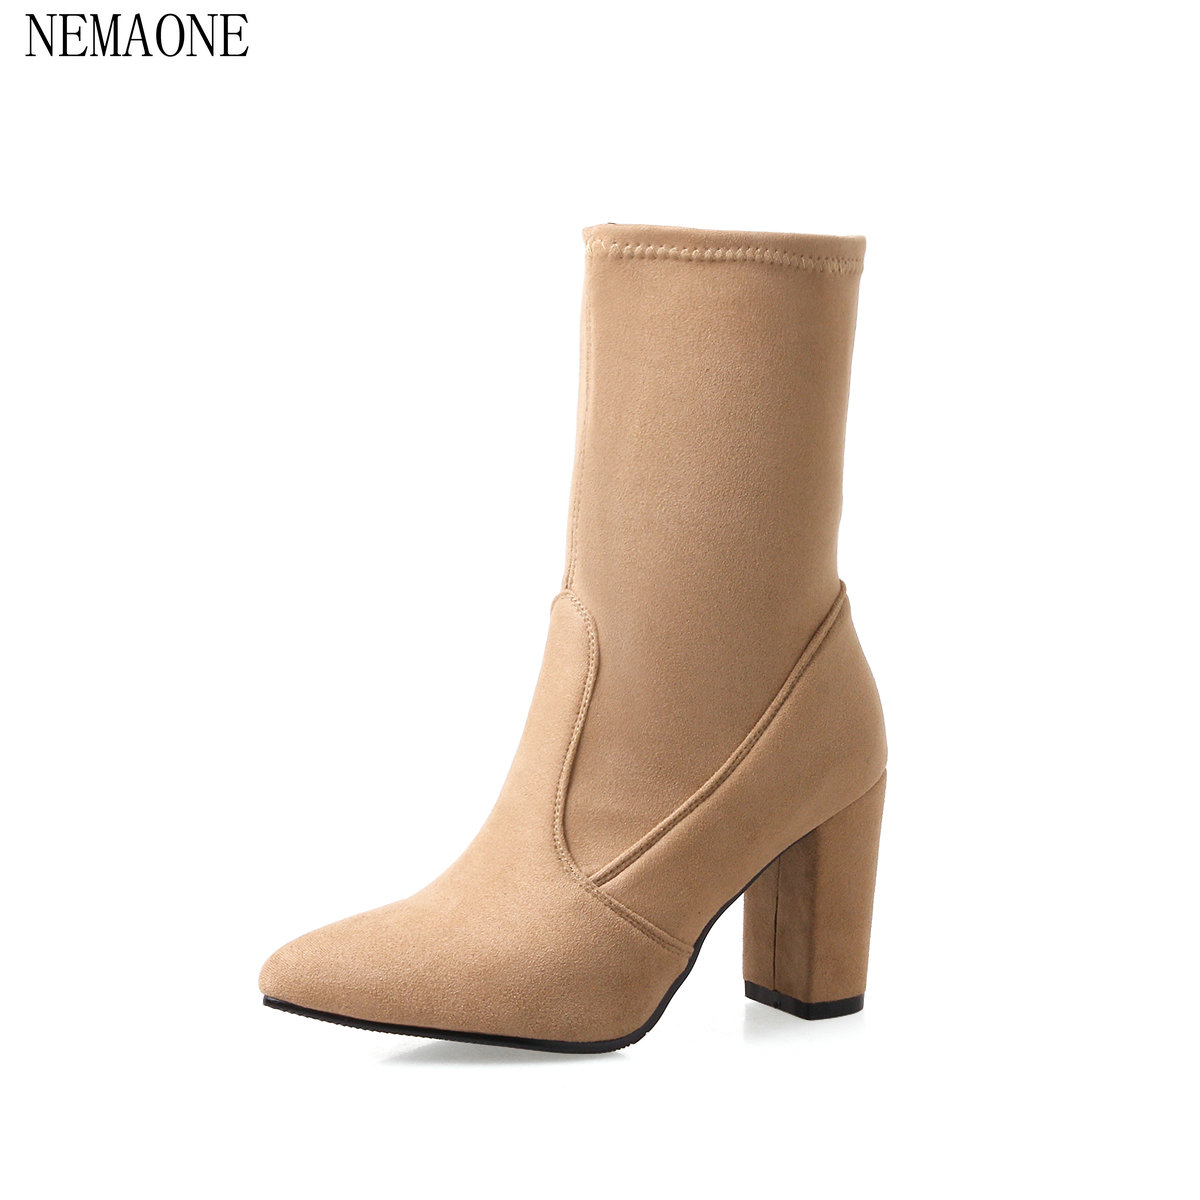 NEMAONE 2018 Women Mid Calf Boots Slip on Pointed Toe Hoof Heels Kid Suede Rubber Soild Winter Women Mid Calf Boots Size 34-43 sweet women s mid calf boots with slip on and suede design